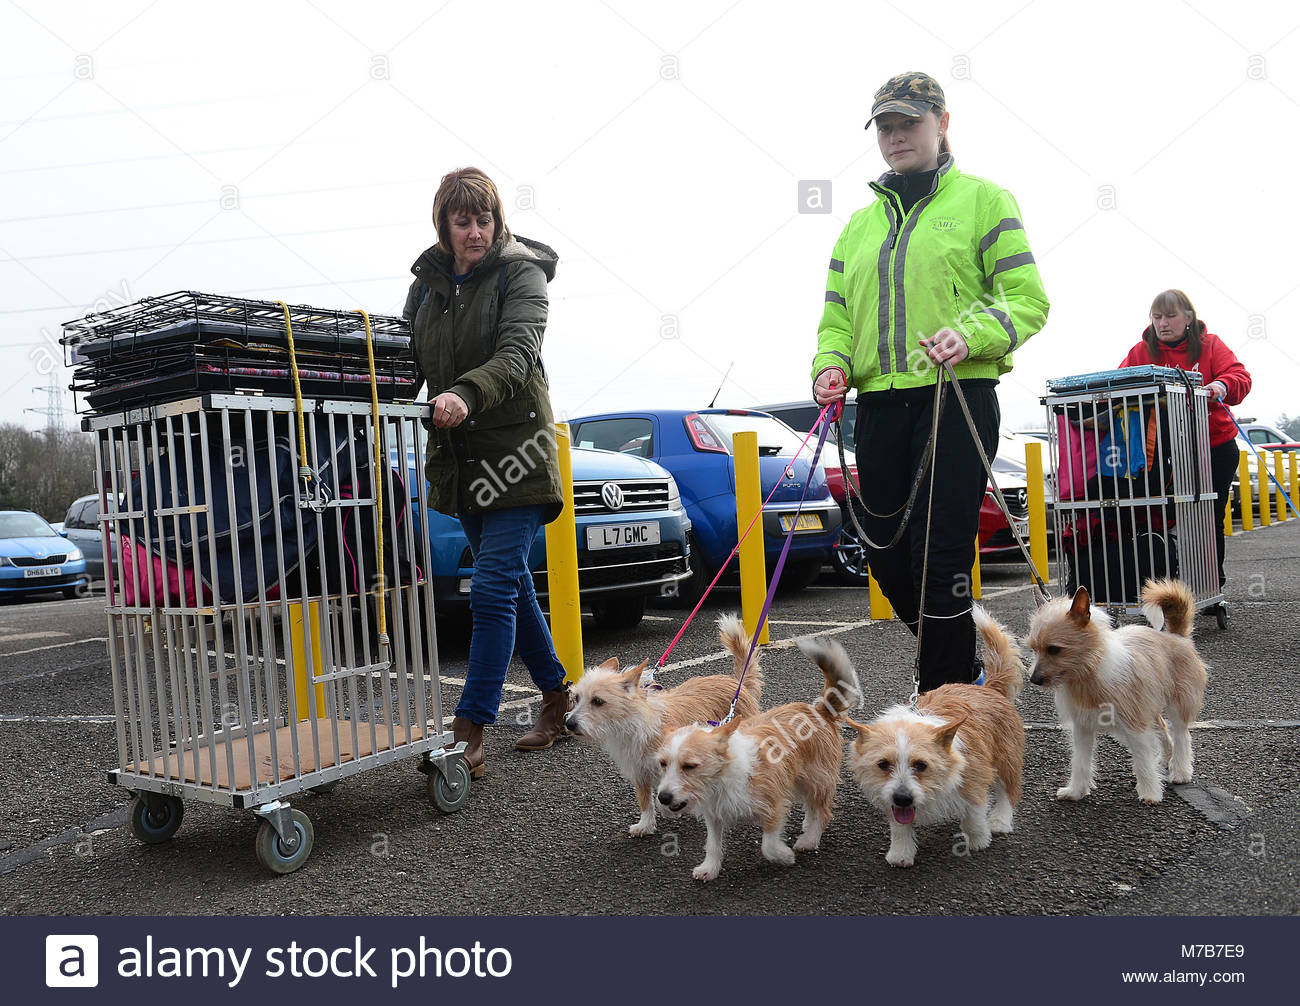 Birmingham, UK. 10 March, 2018. Jamie Sandh fom Sweden arriving at Crufts with her 4 Portuguese Podengo dogs. Picture - Stock Image